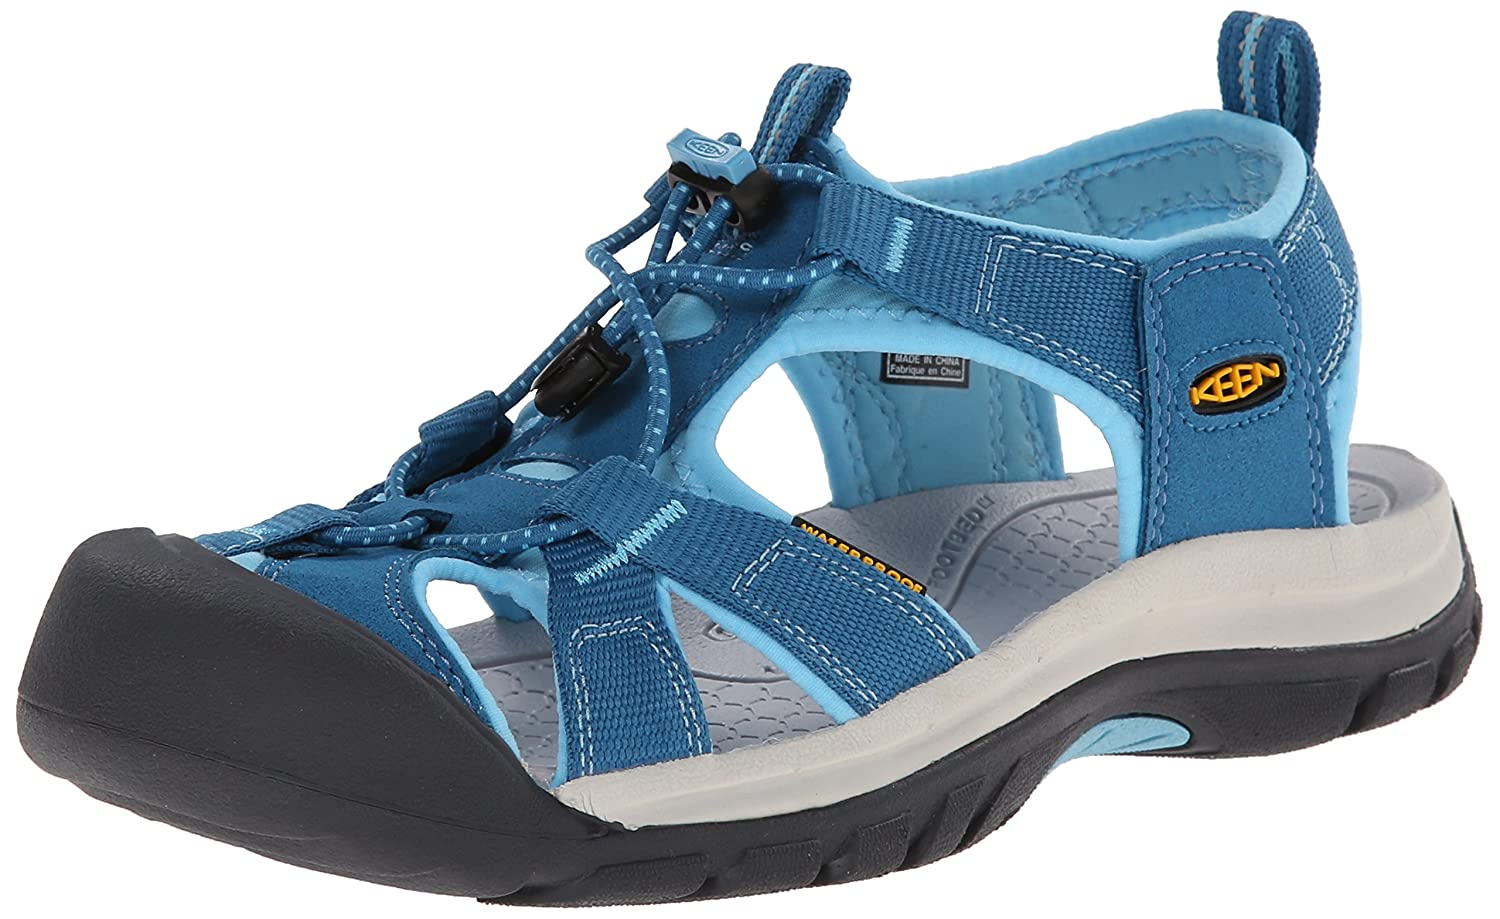 KEEN Women's Venice H2 Sandal B00M0KAL7U 9 B(M) US|Celestial/Blue Grotto